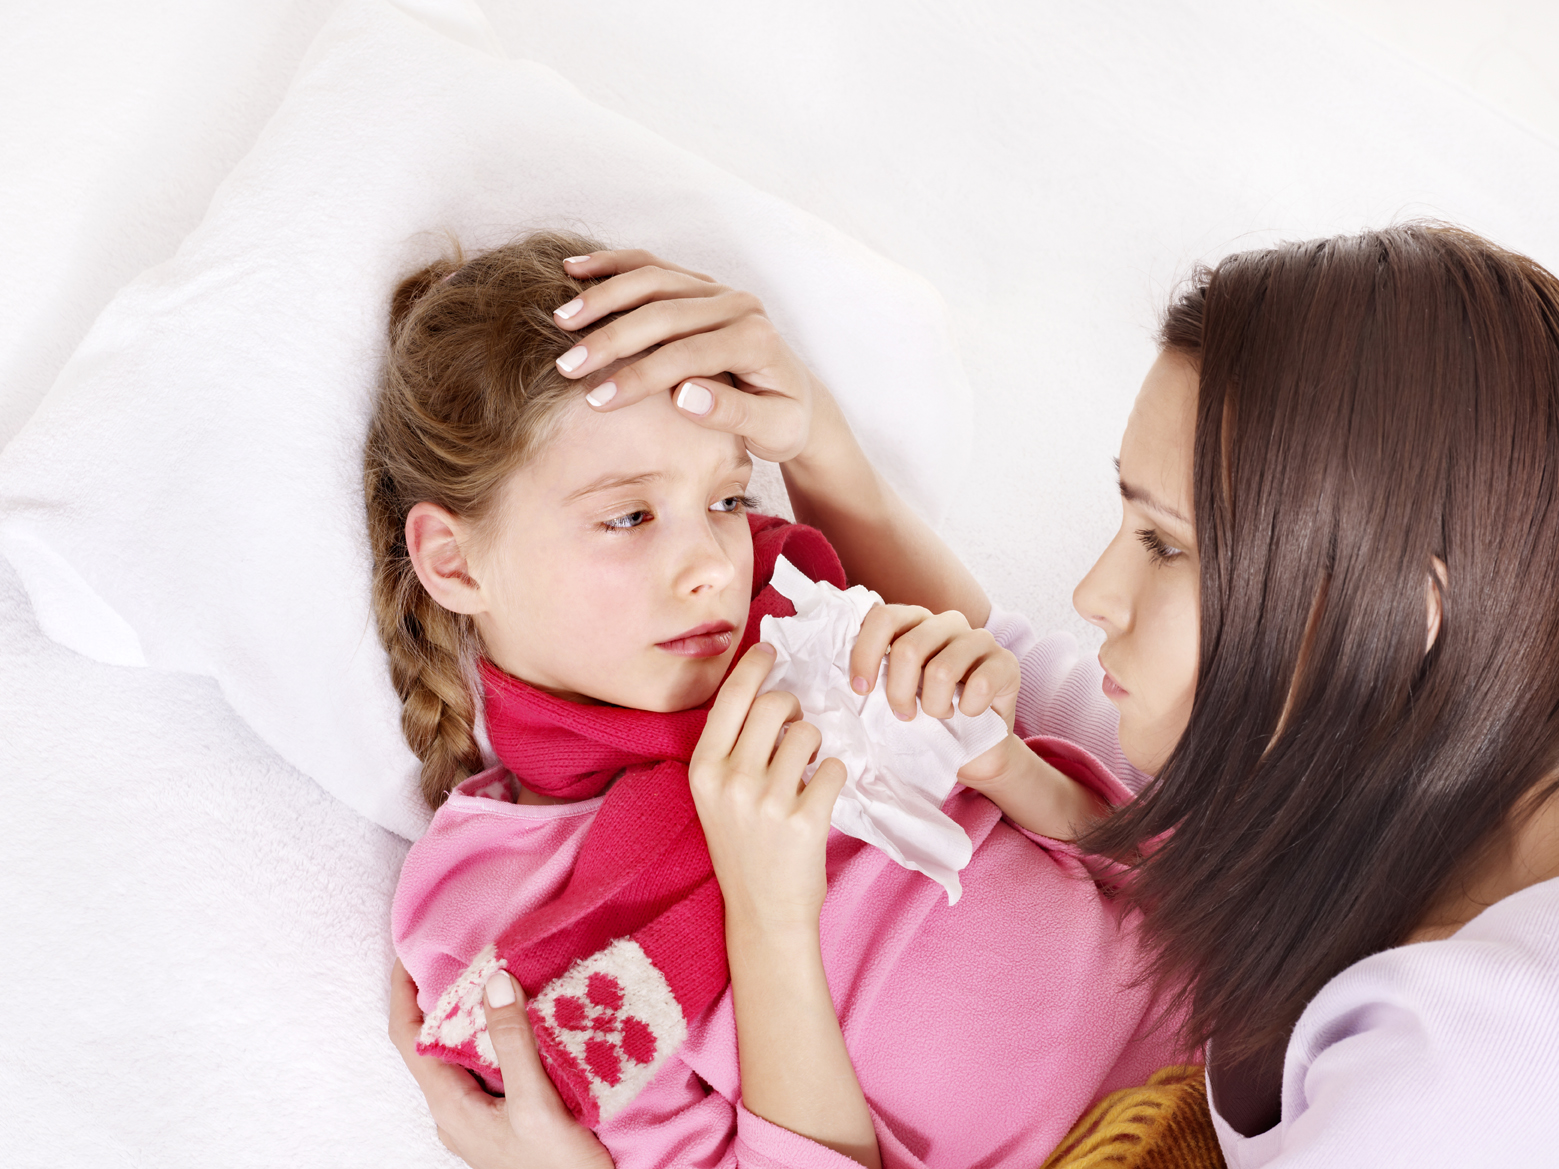 Mom with sick child